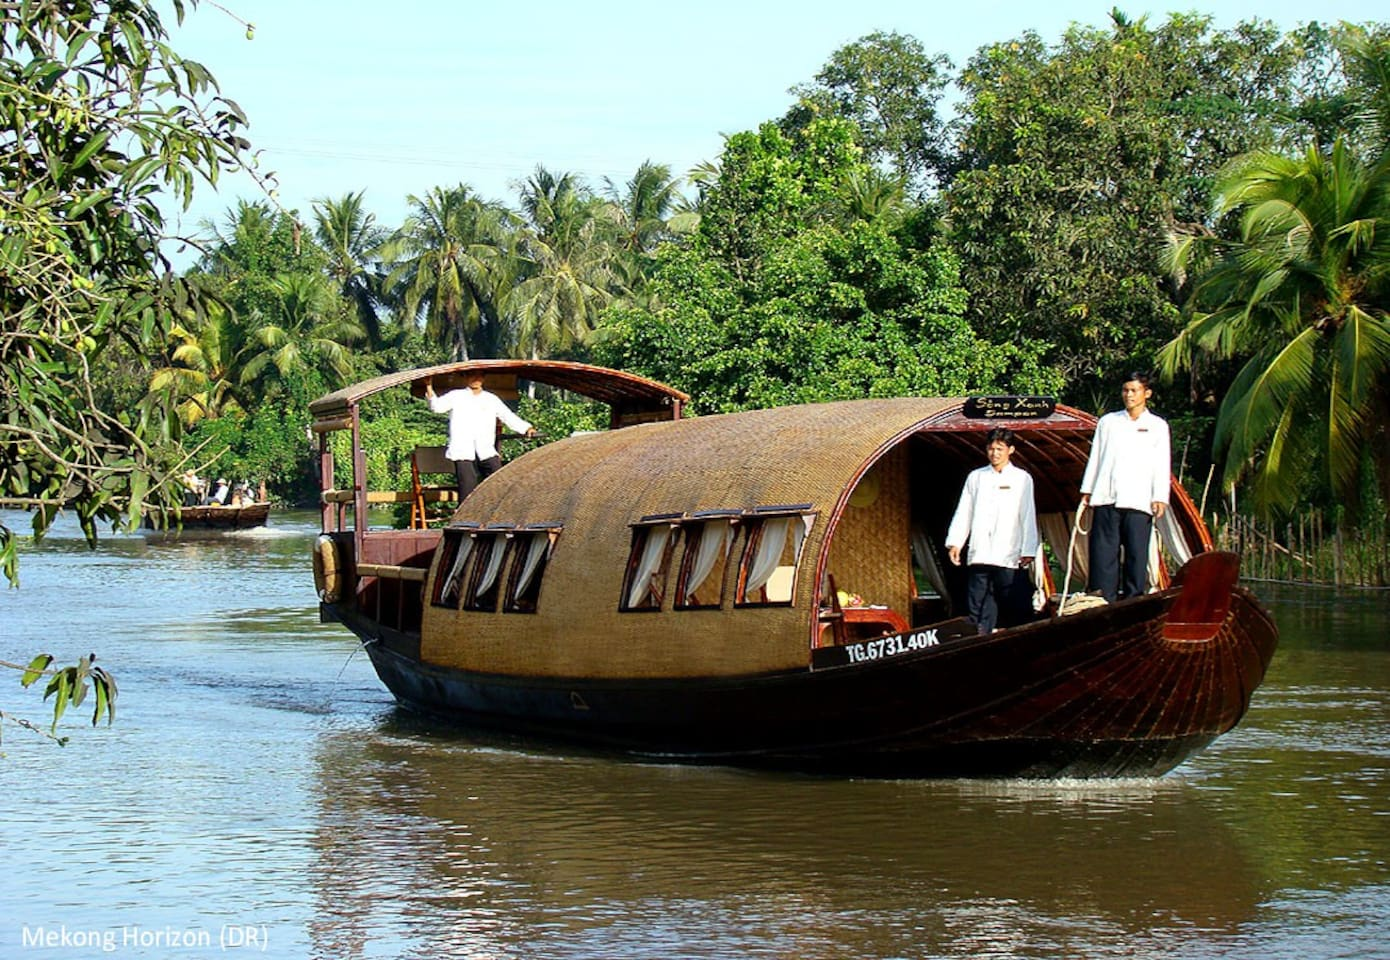 Boat trip from HCM to Mekong Delta